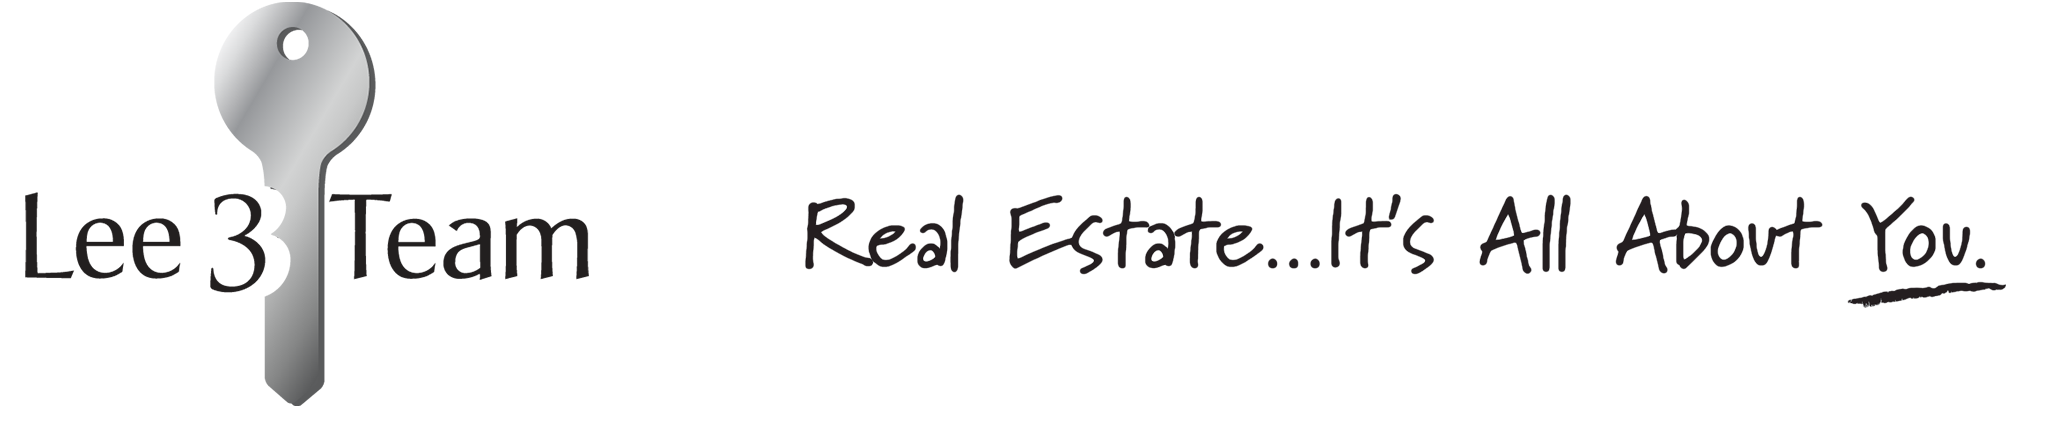 The Lee 3 Team: Real Estate Services in Raleigh, Durham & Chapel Hill North Carolina